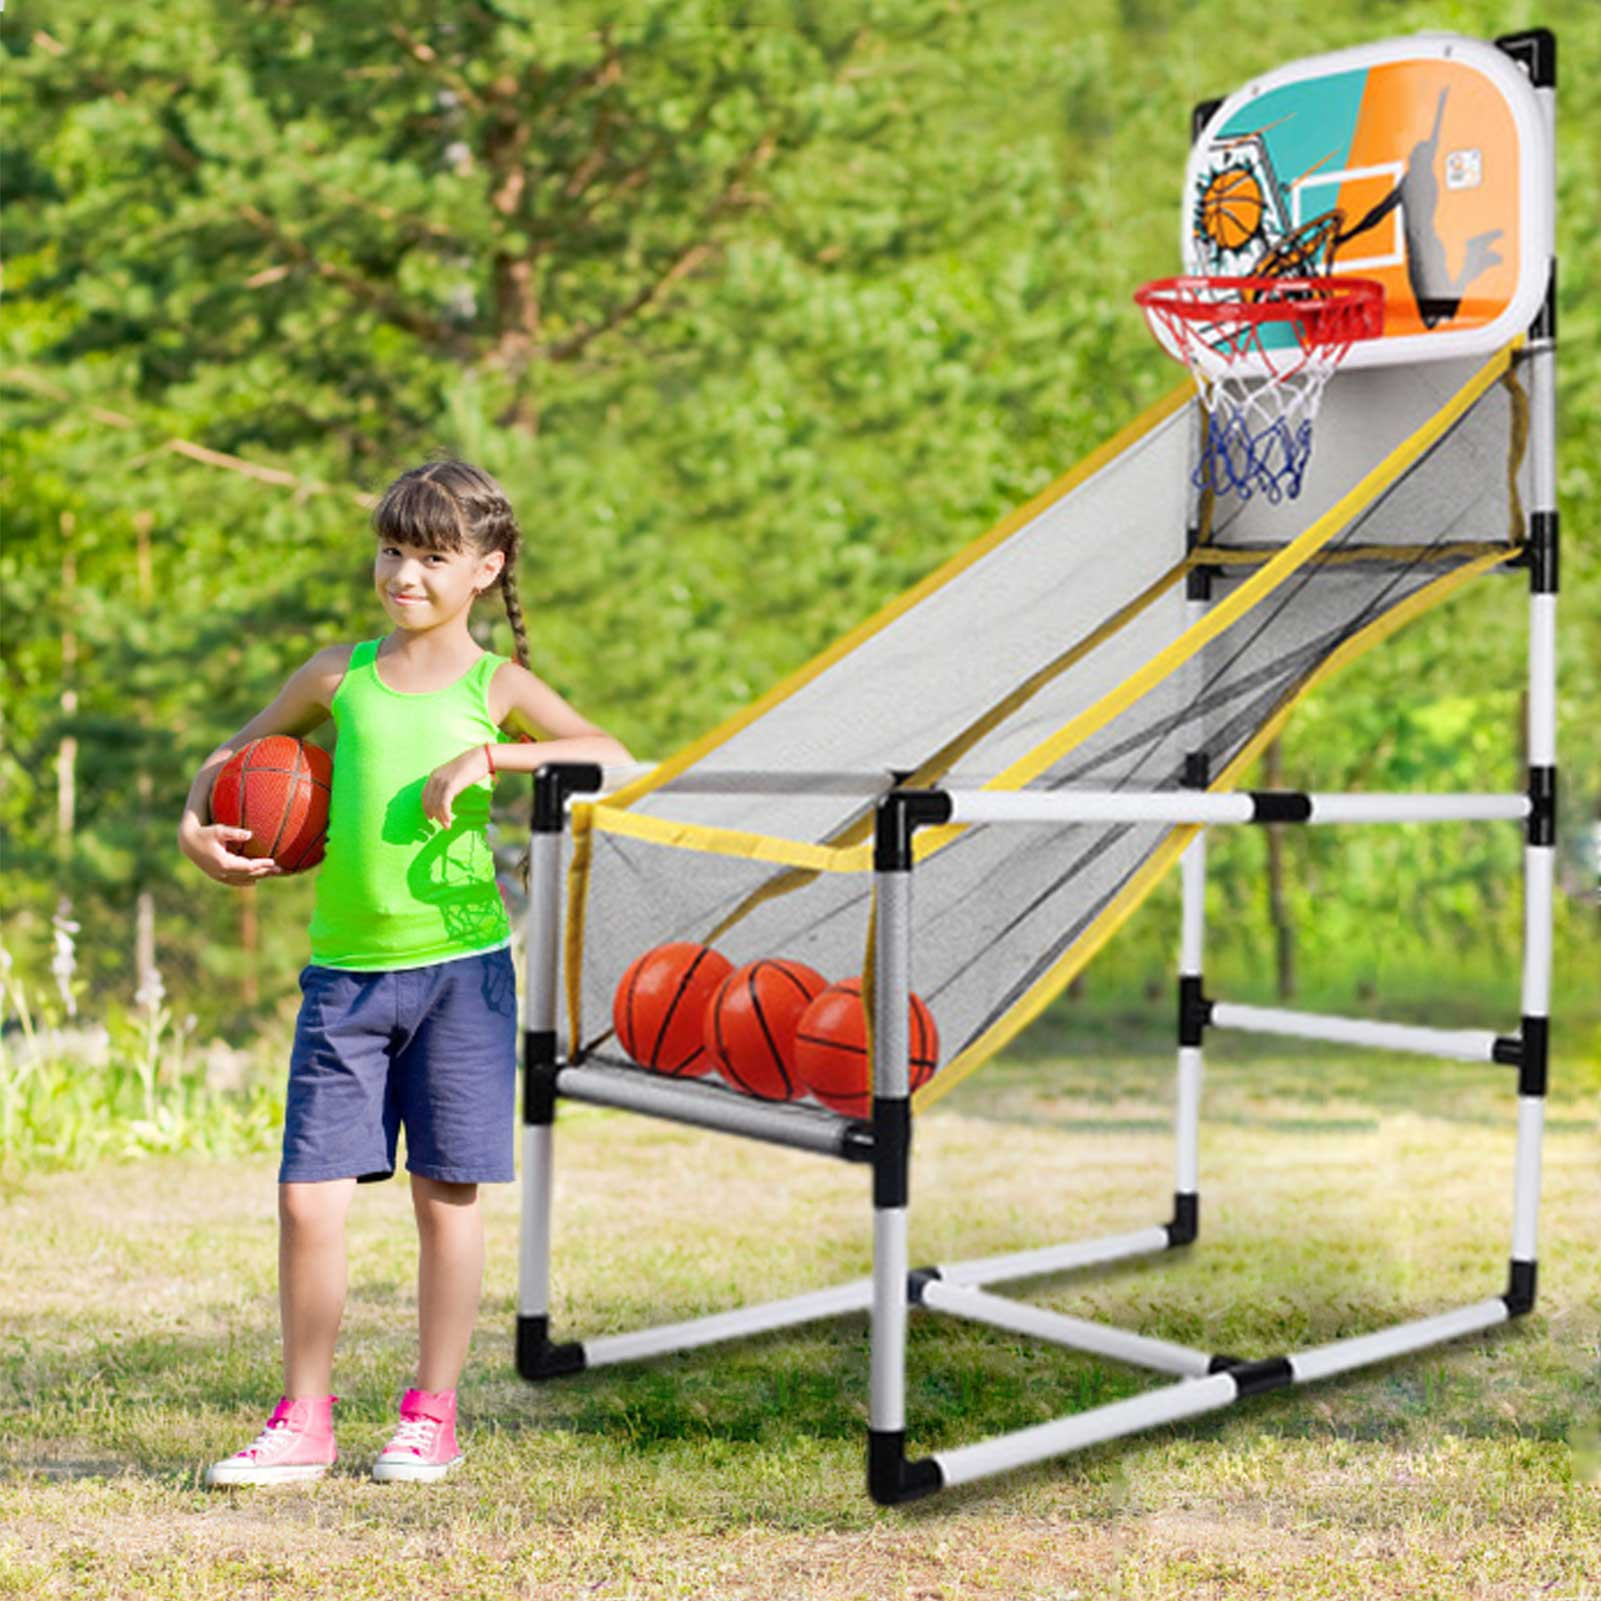 Indoor Basketball Shooting Sports Playset Basketball Hoop Arcade Game Brain-Training Toy For Children Kids Educational Toy Gift adjustable kids basketball stand hoop indoor outdoor shooting toy with metal pole